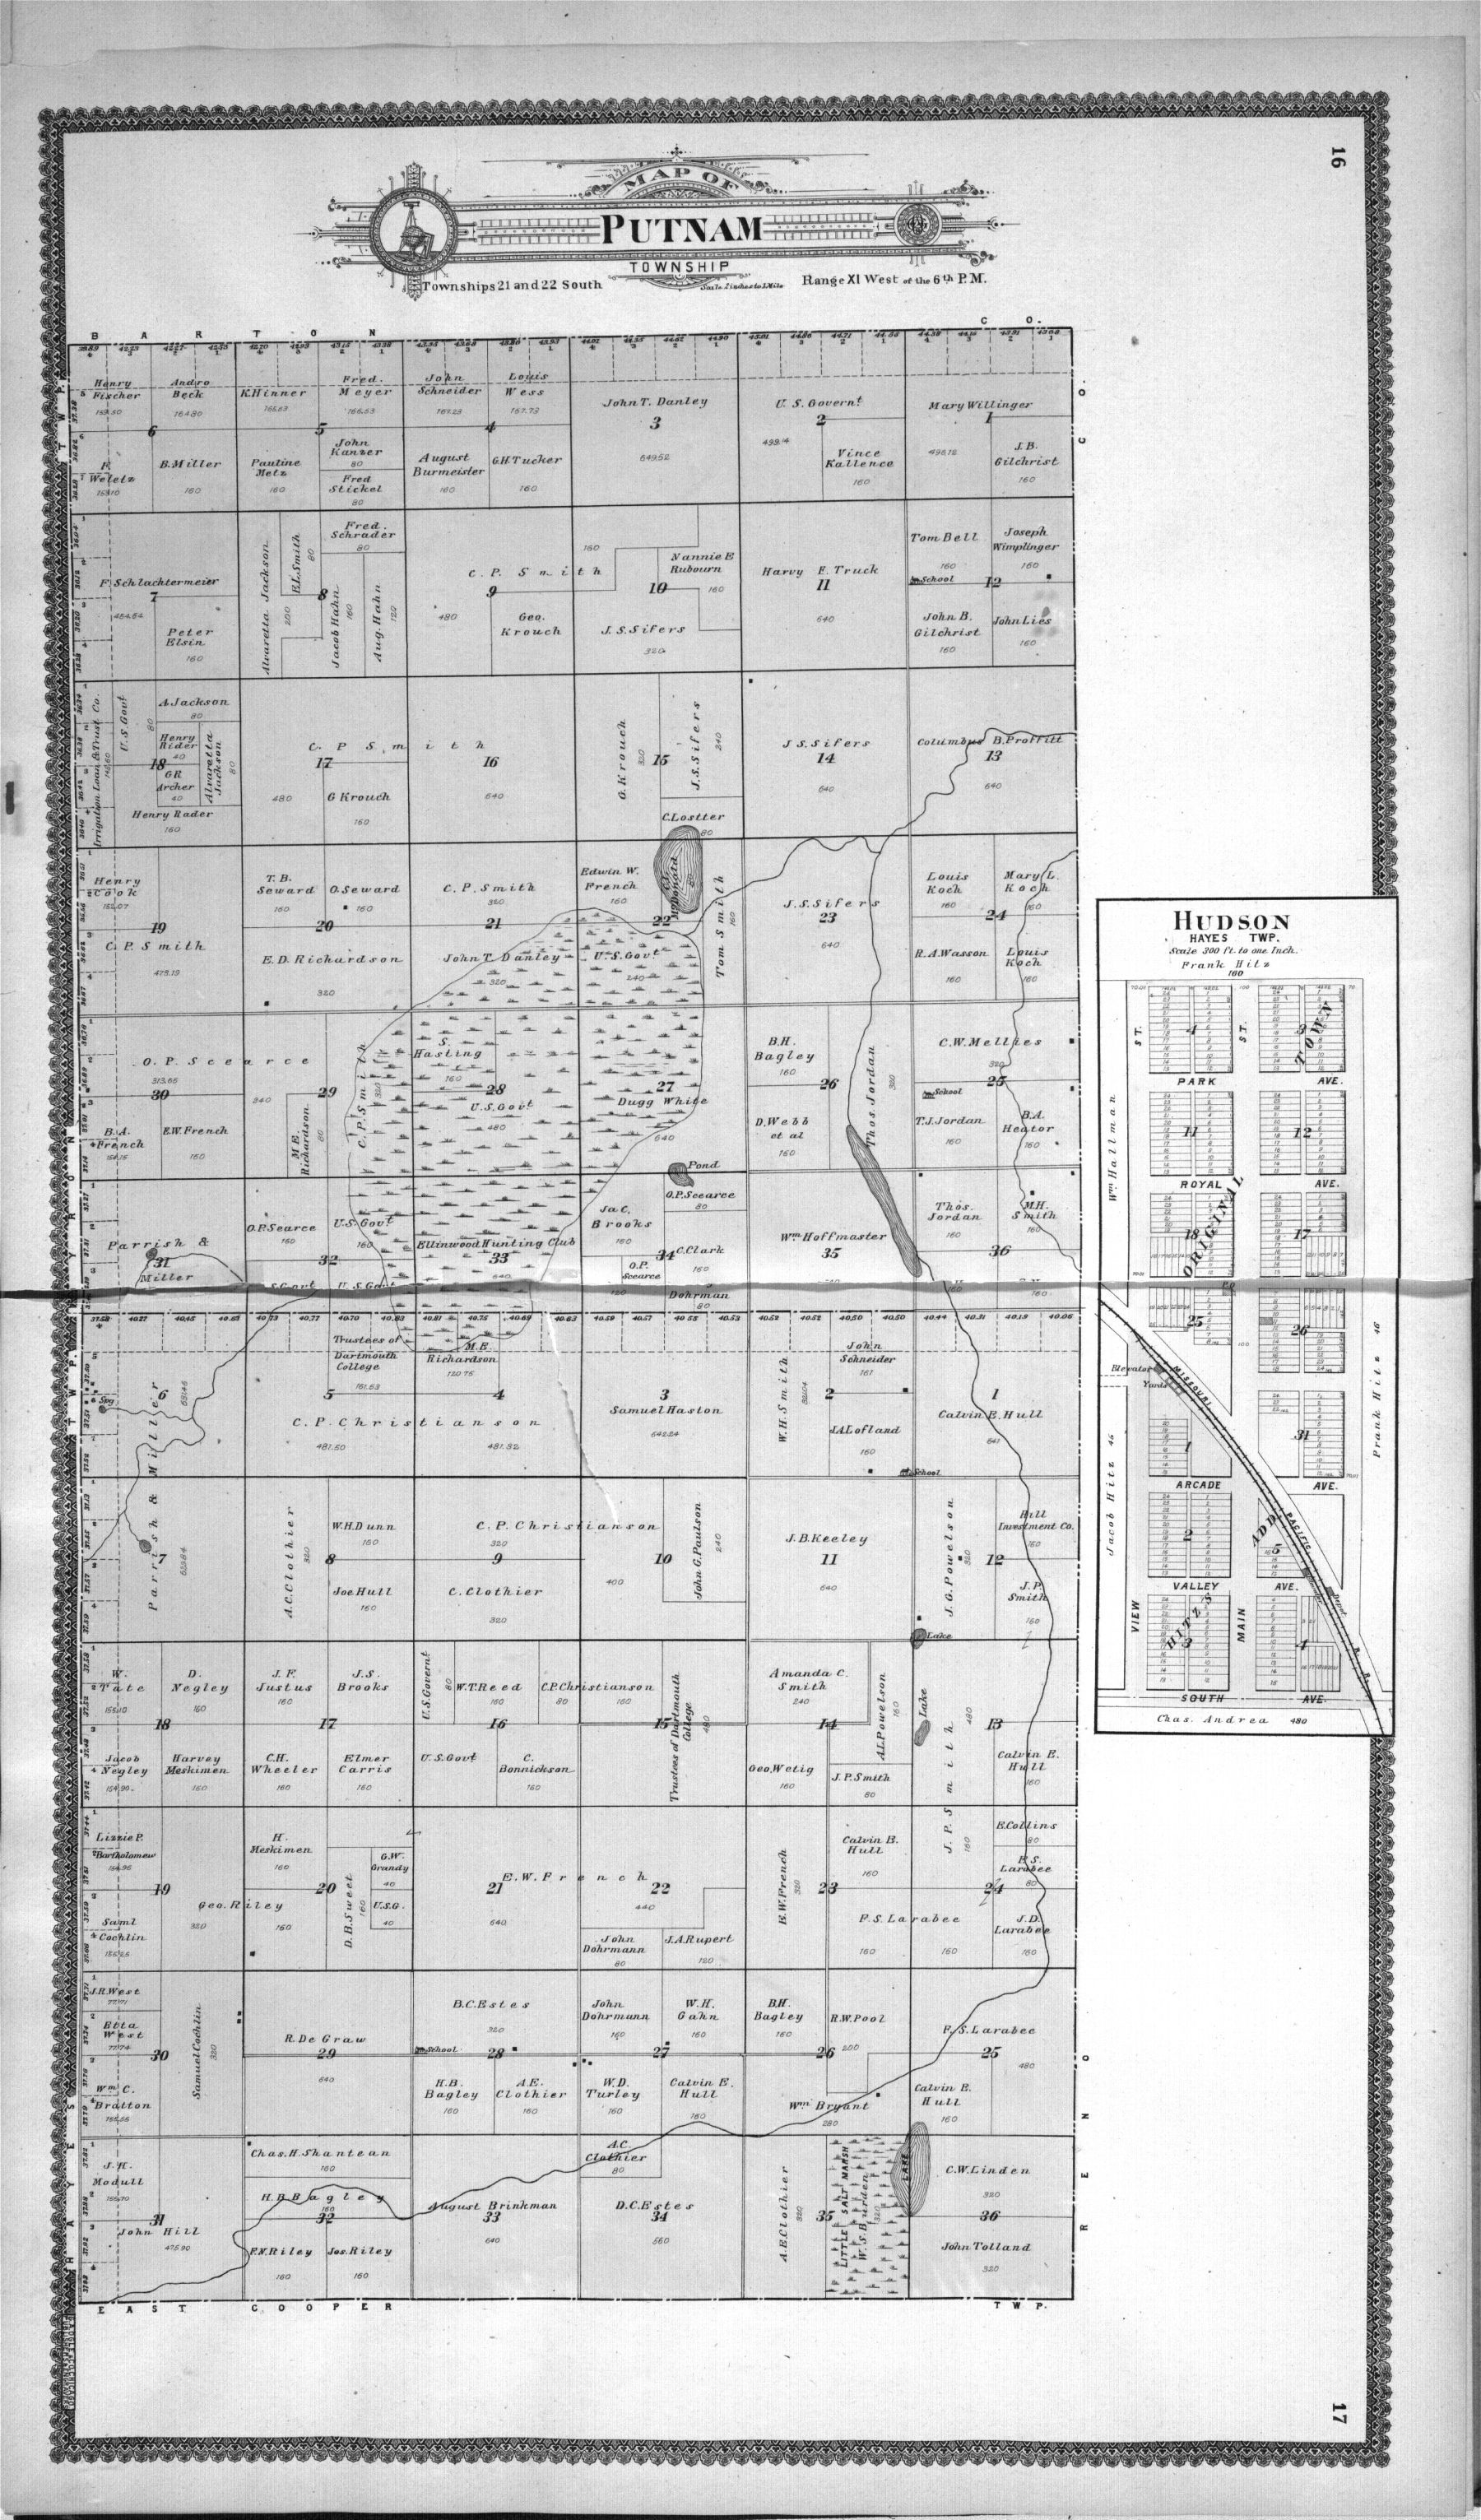 Standard atlas of Stafford County, Kansas - 16 & 17